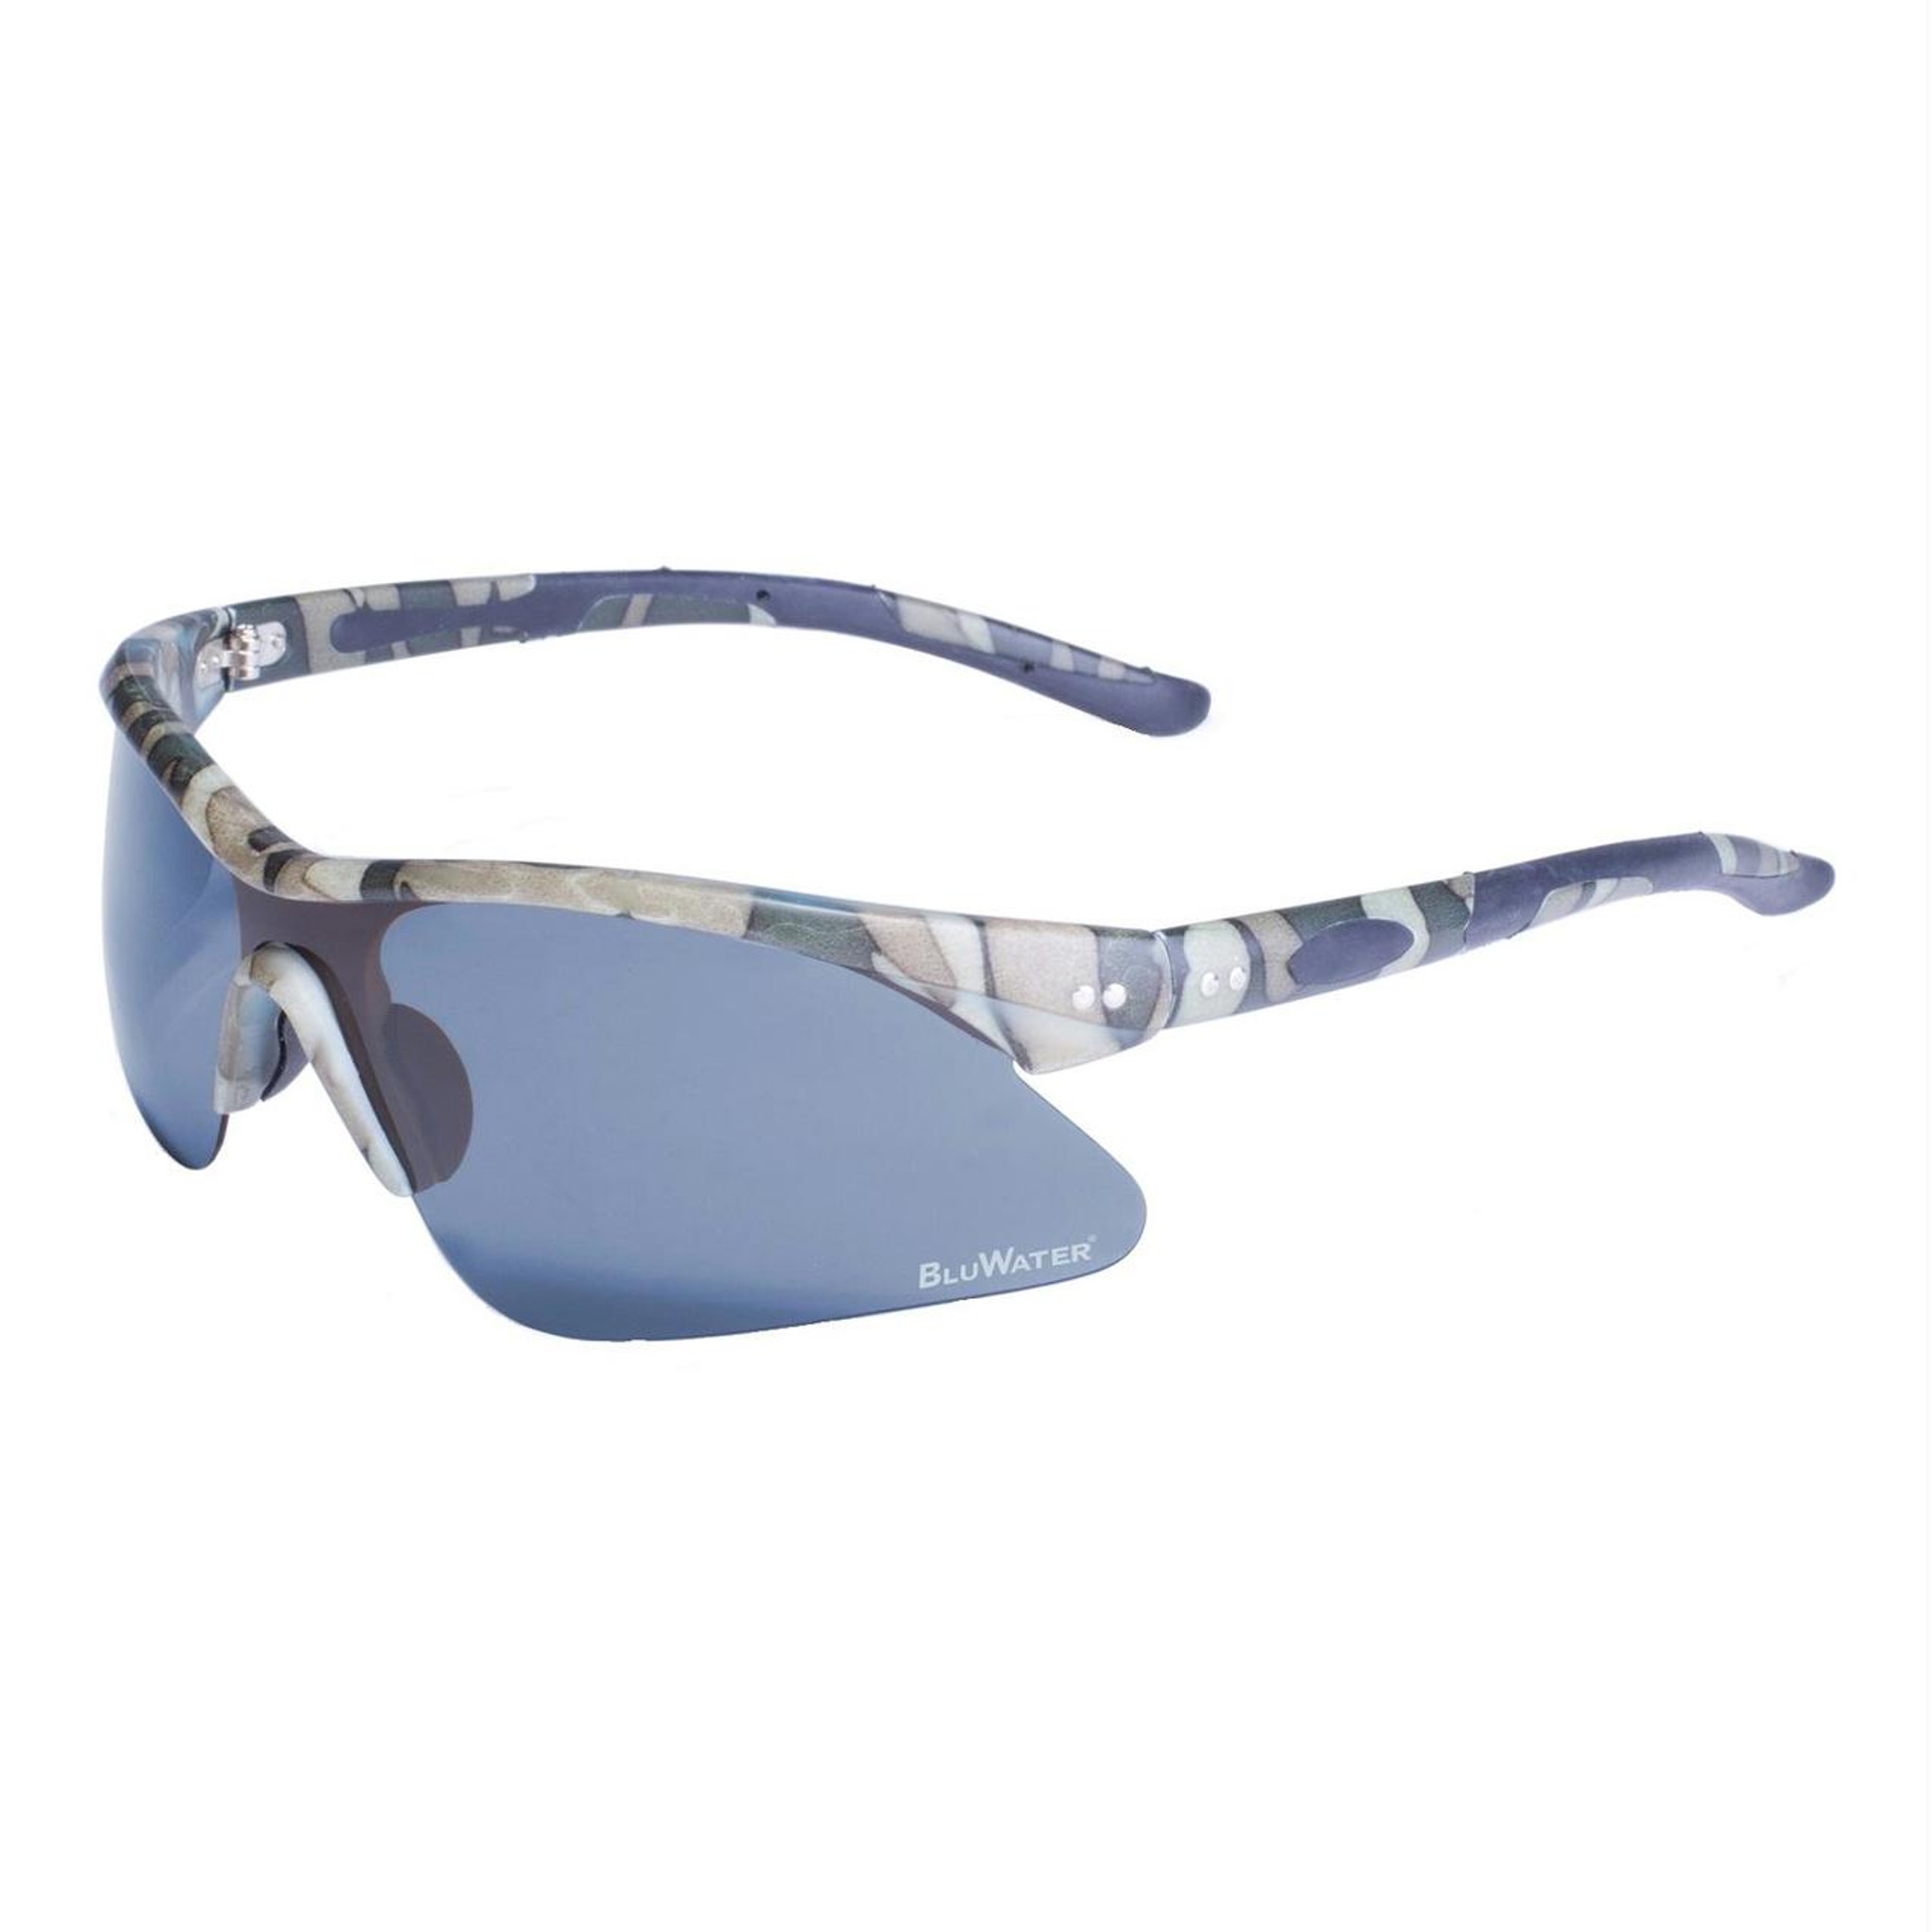 BlueWater Semi Rimless Camo Frame with Grey Polarized Lens